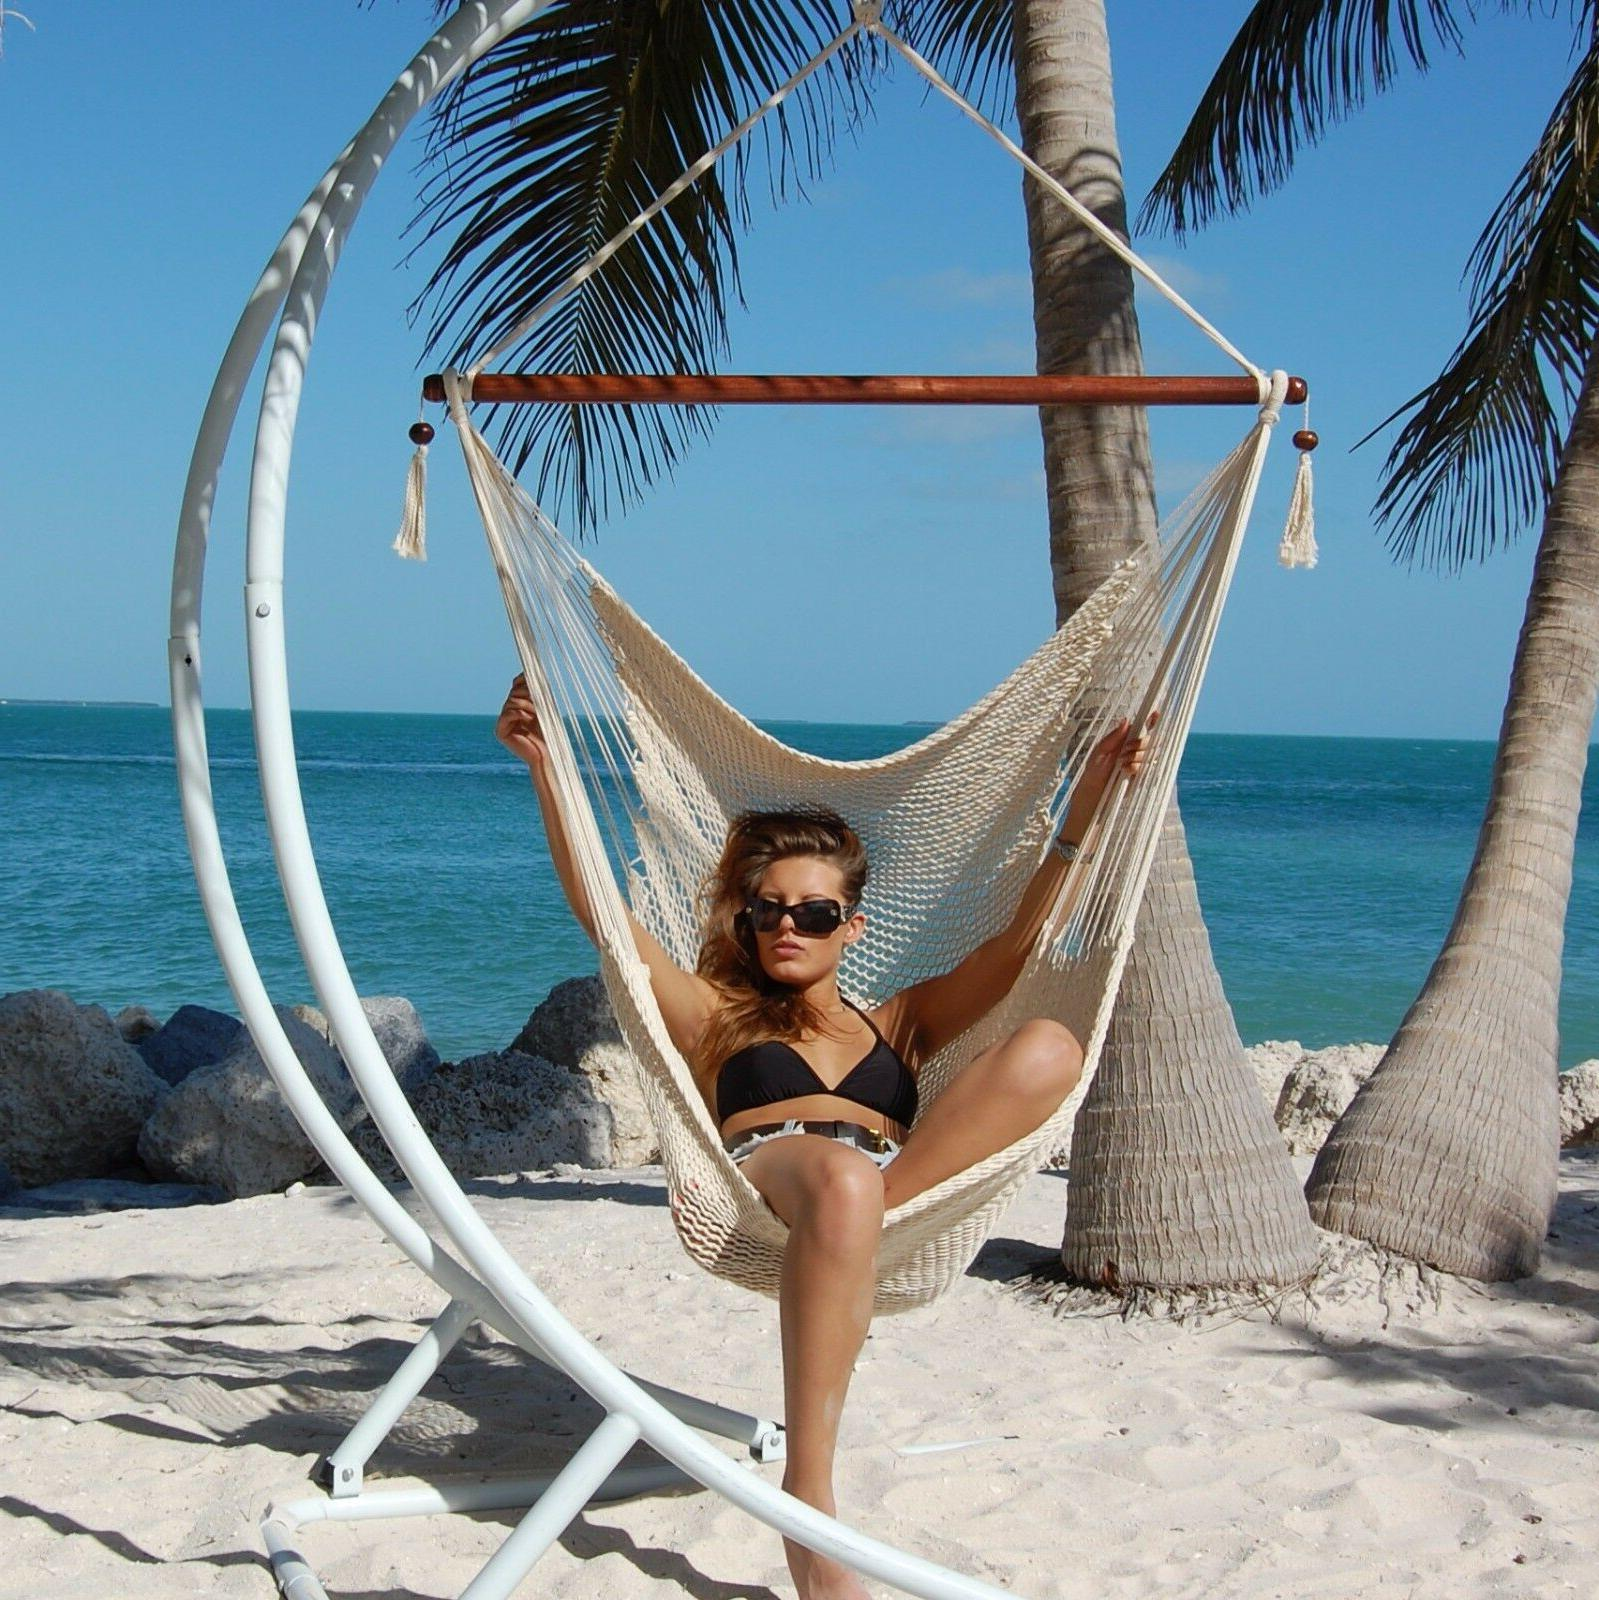 Large Caribbean Hammock 48 Spun Polyester Not Included-